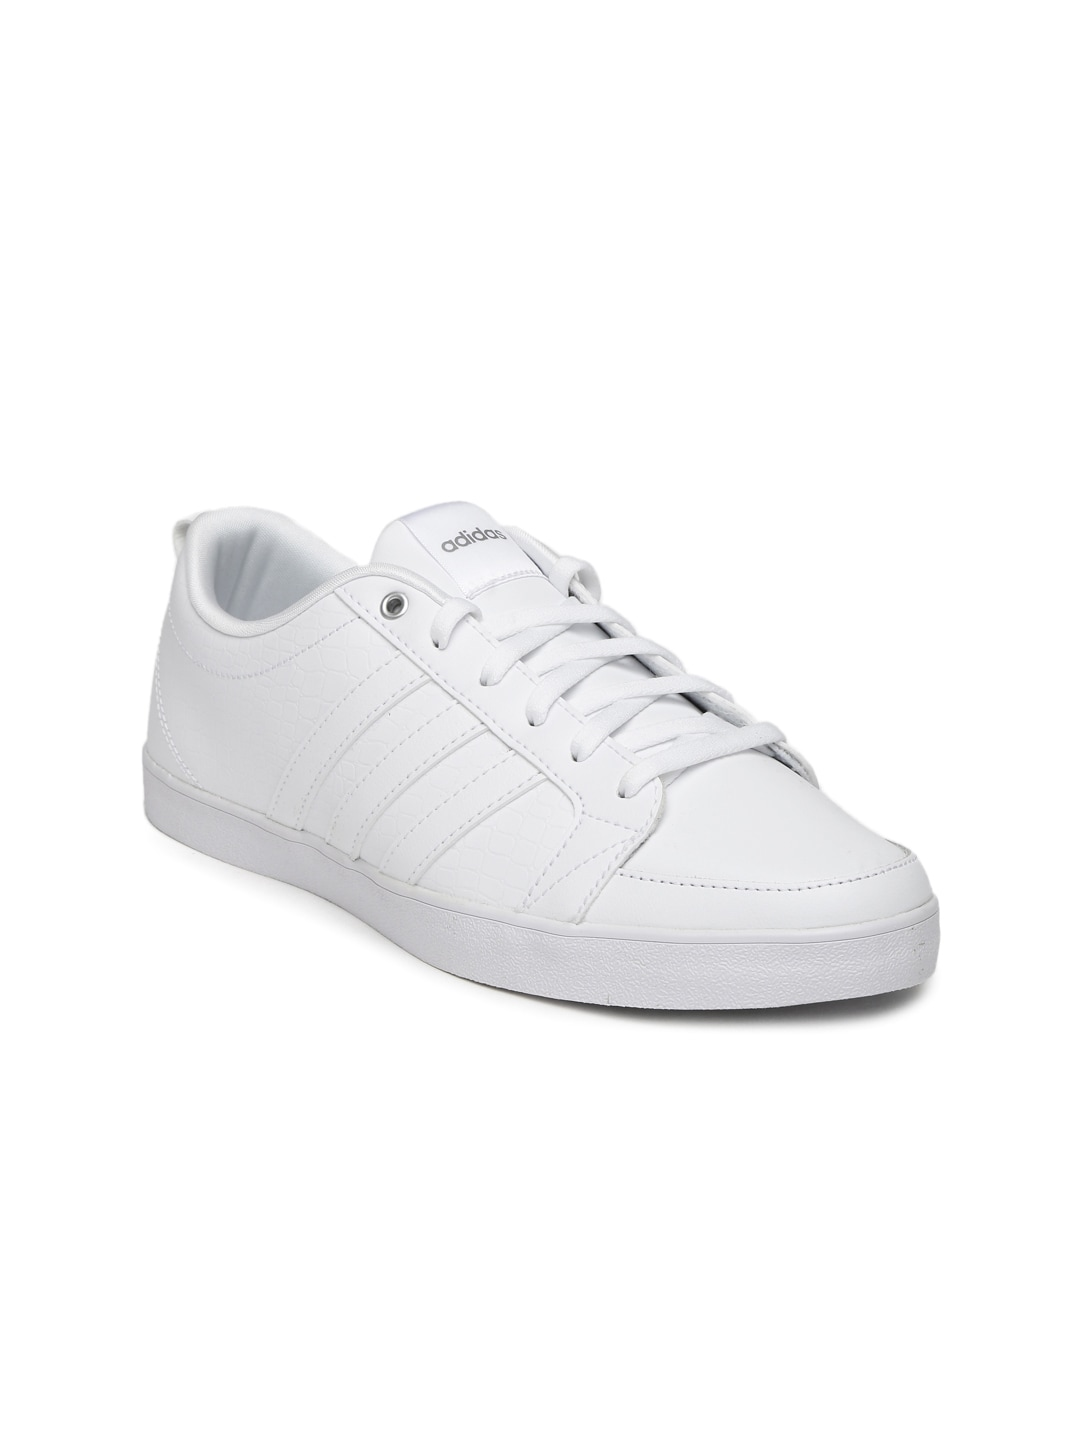 White sneakers are taking over the sidewalks and show the athleisure trend has no plans of slowing down. Shop our favorite white sneakers from brands like Adidas, Superga, and Keds.